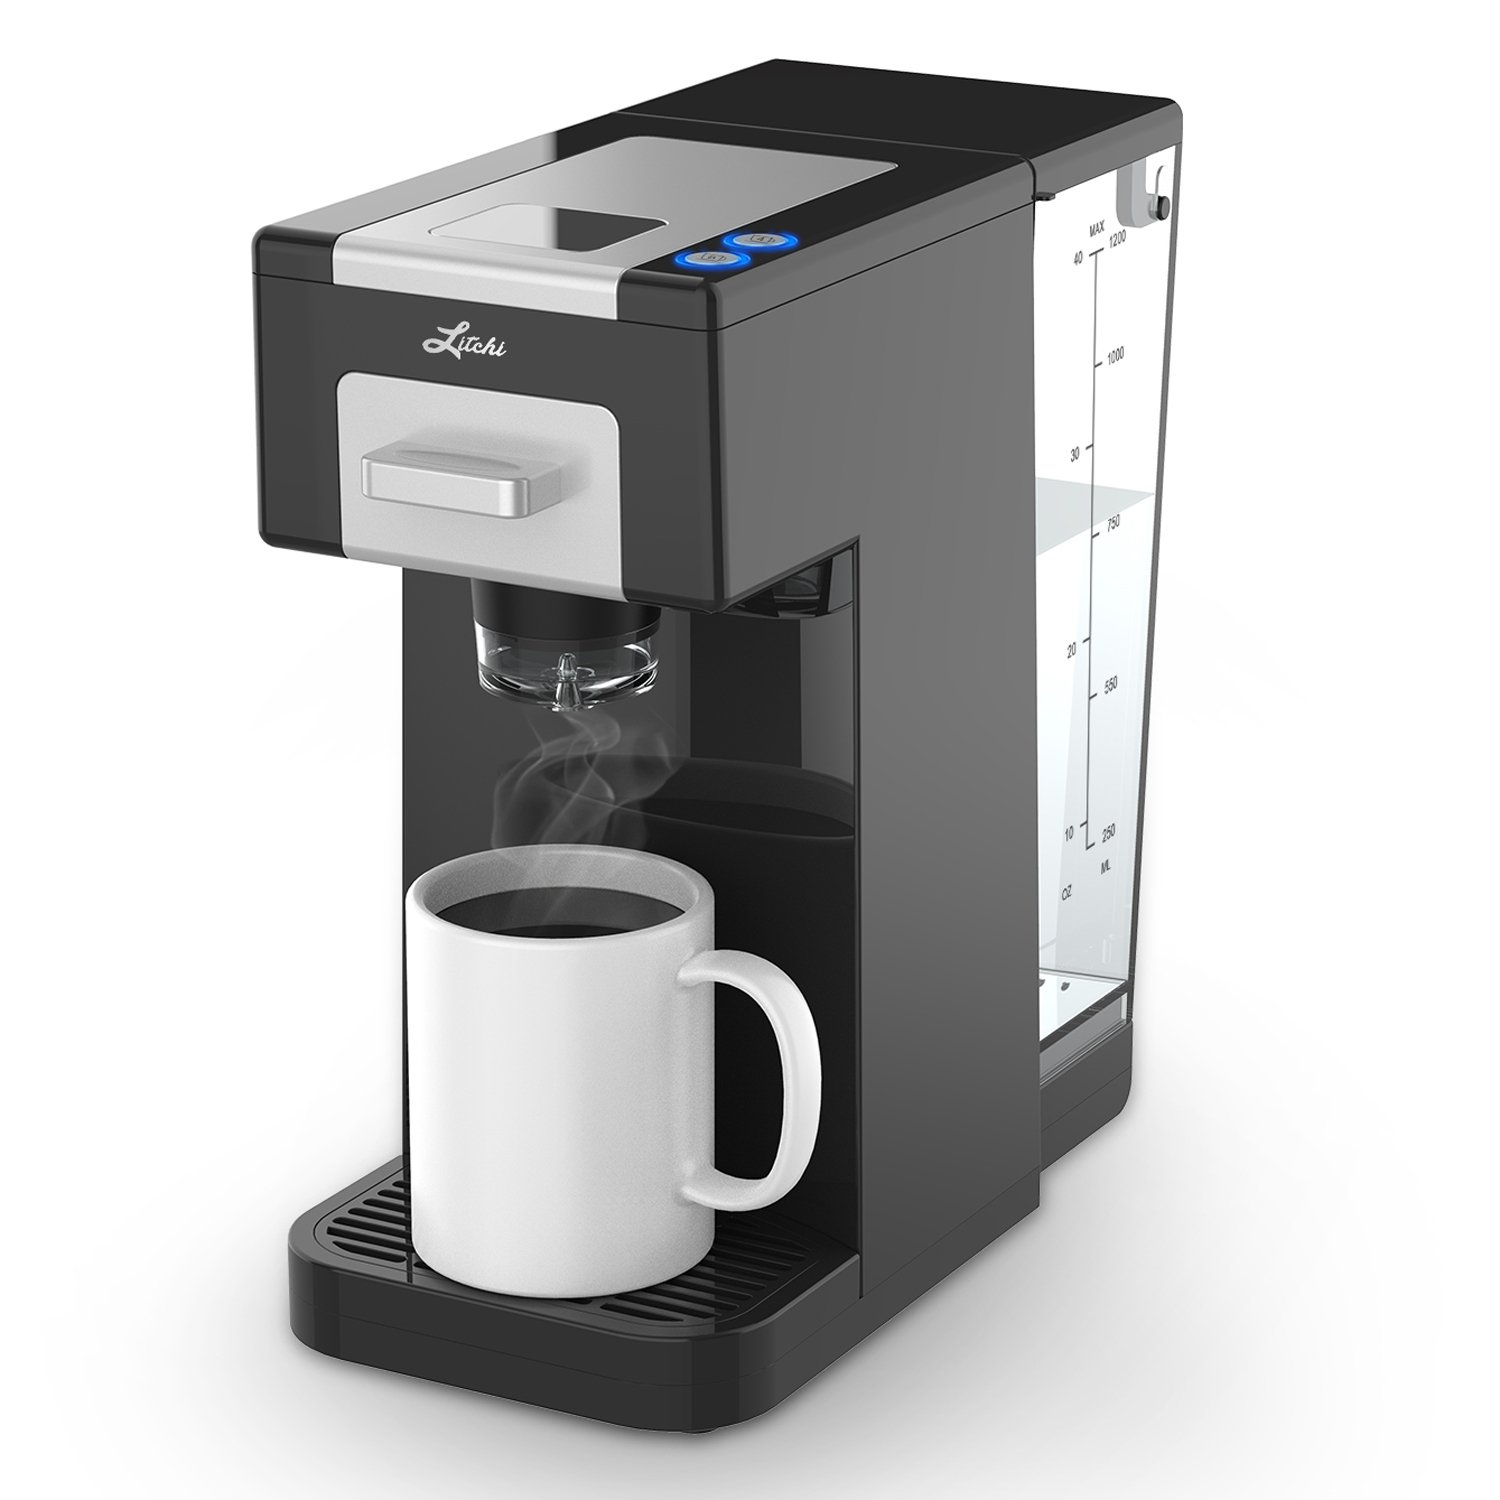 Litchi Single Serve Coffee Maker for Most Single Cup Pods Including K Cup Pods, Ground Coffee, 40 OZ Detachable Reservoir, 4 OZ, 8 OZ or Customized Brew Size, Black KCM1608B